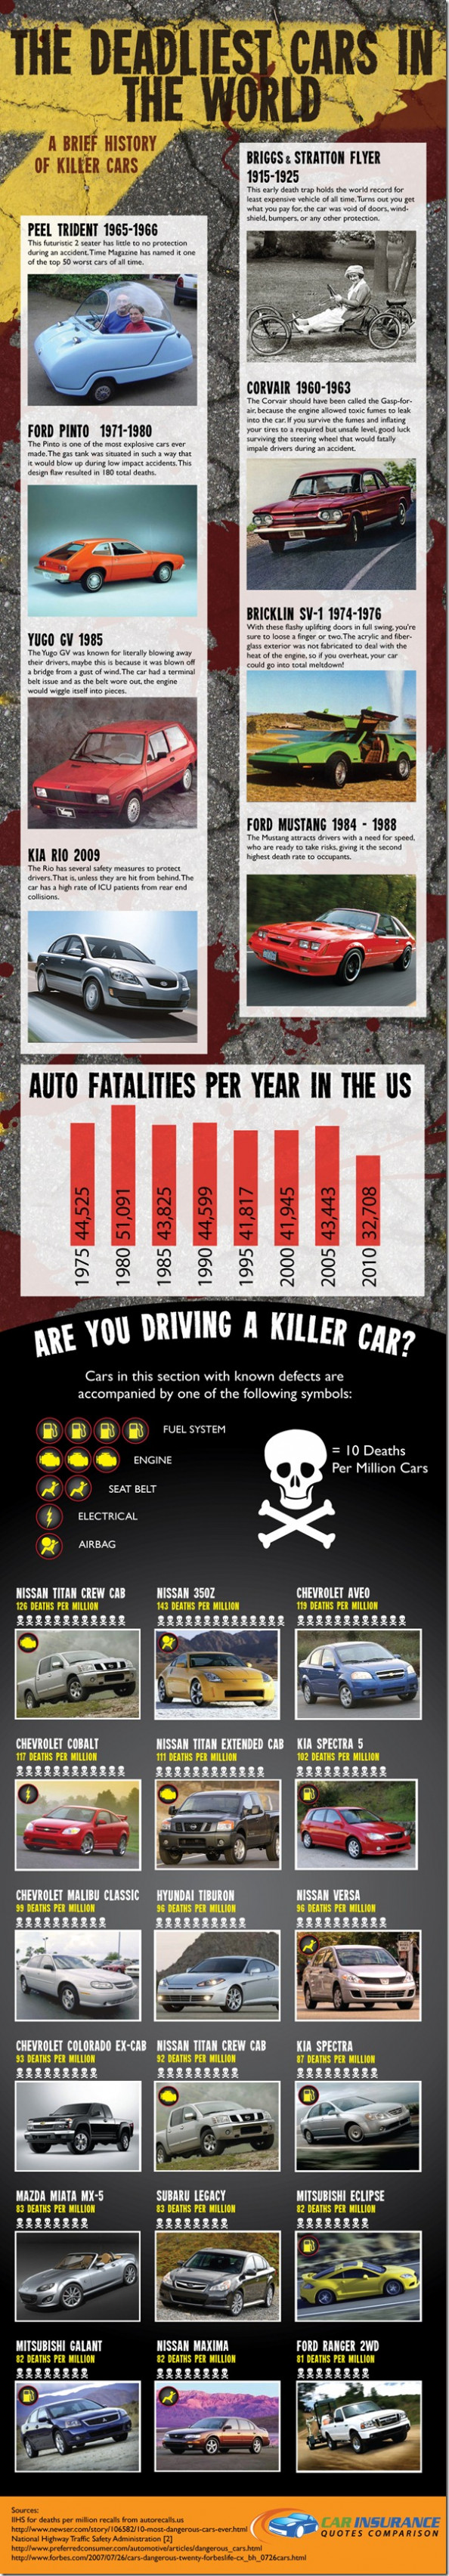 Deadliest Cars in the World Infographic